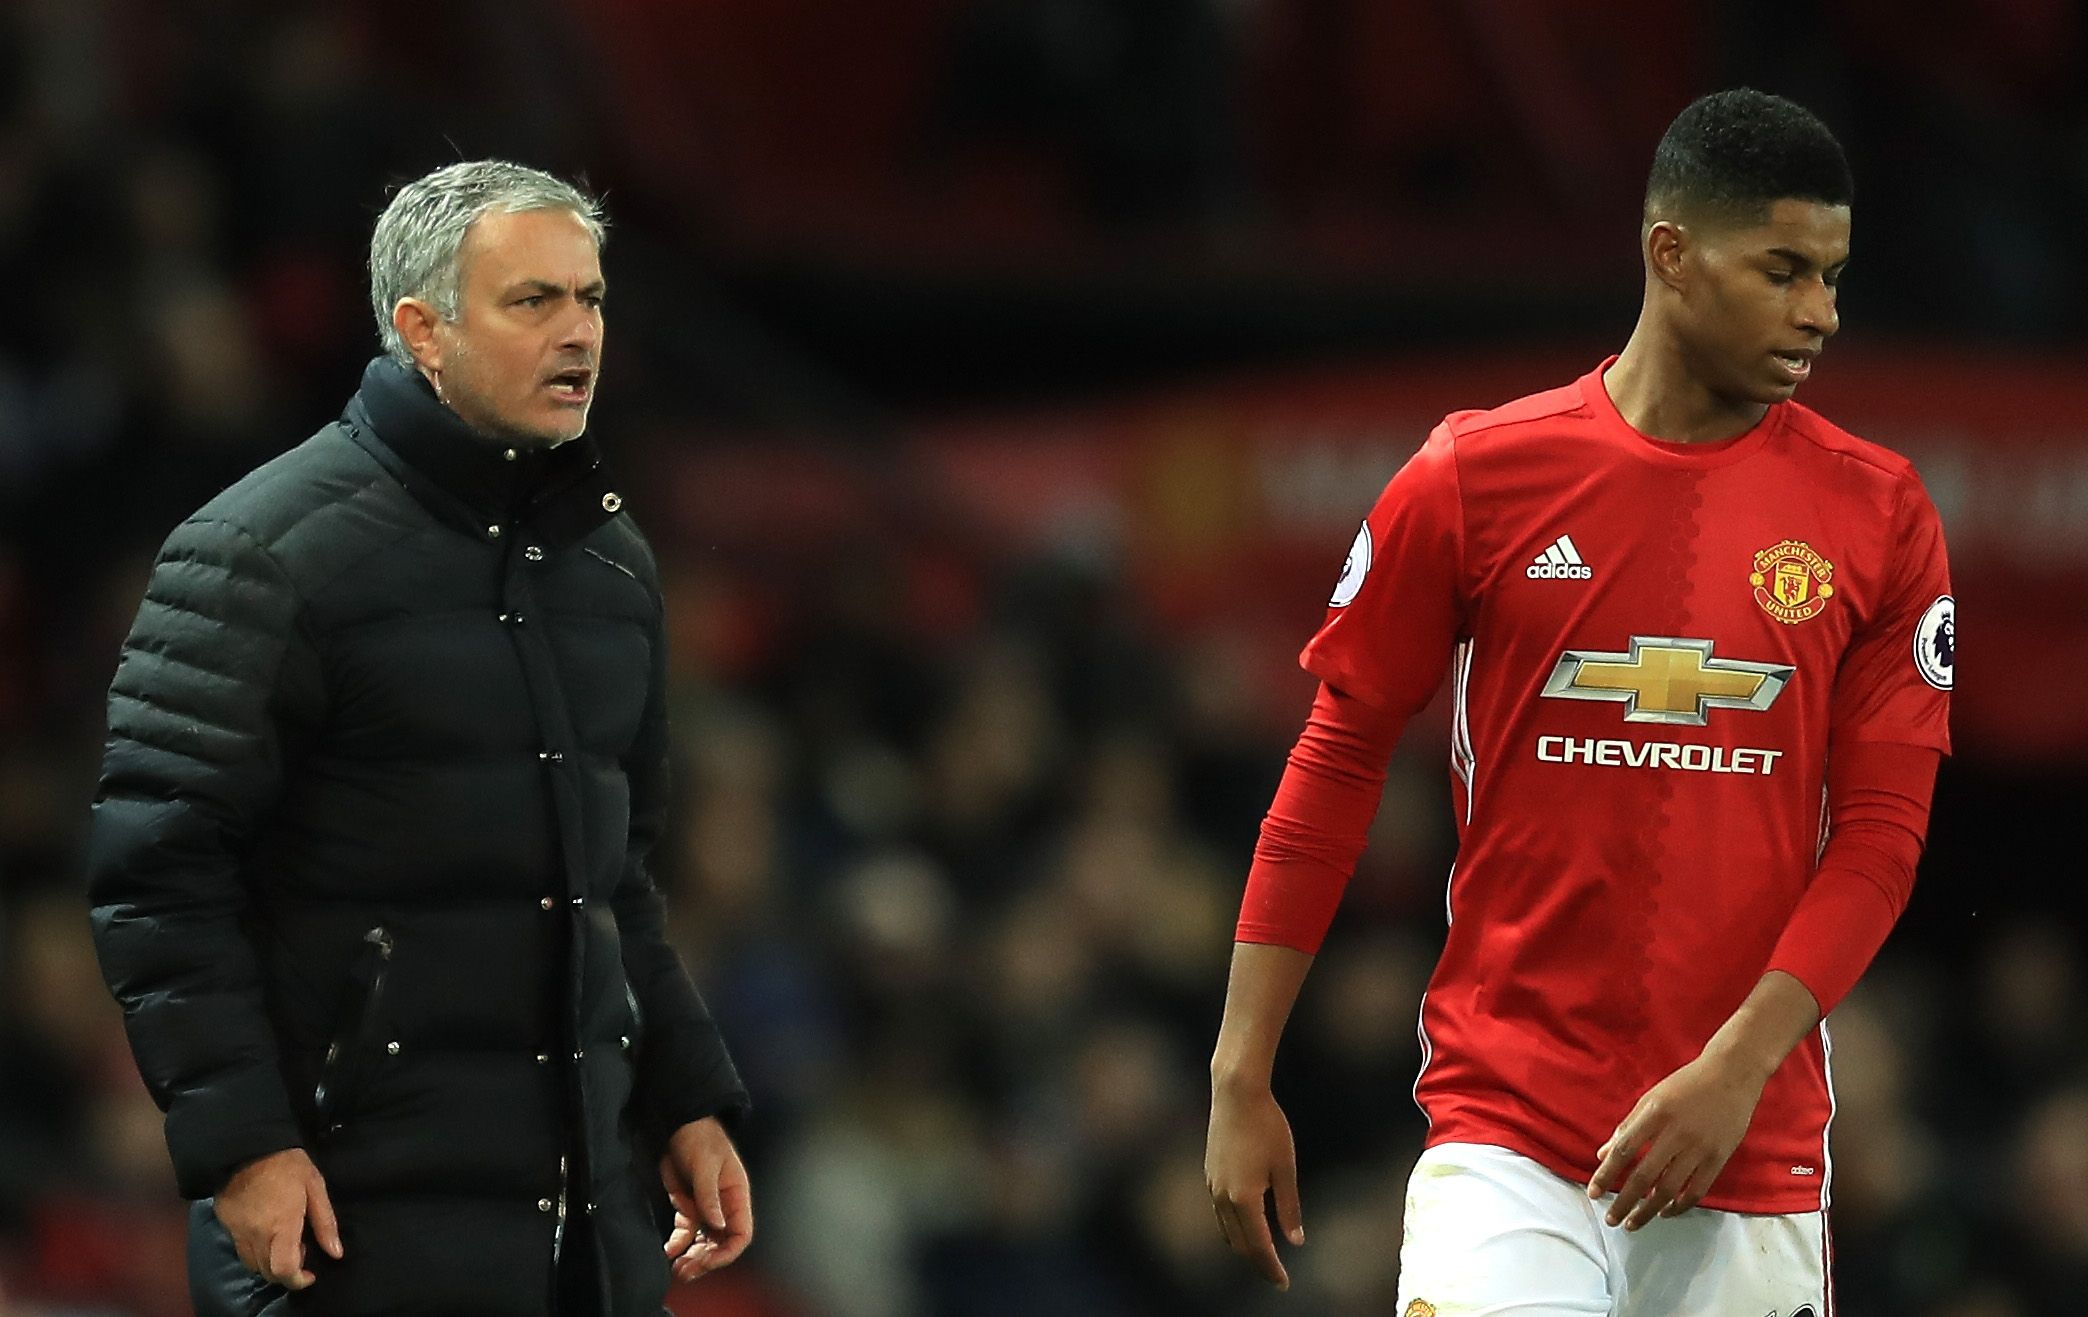 Manchester United manager Jose Mourinho, left, with Marcus Rashford.